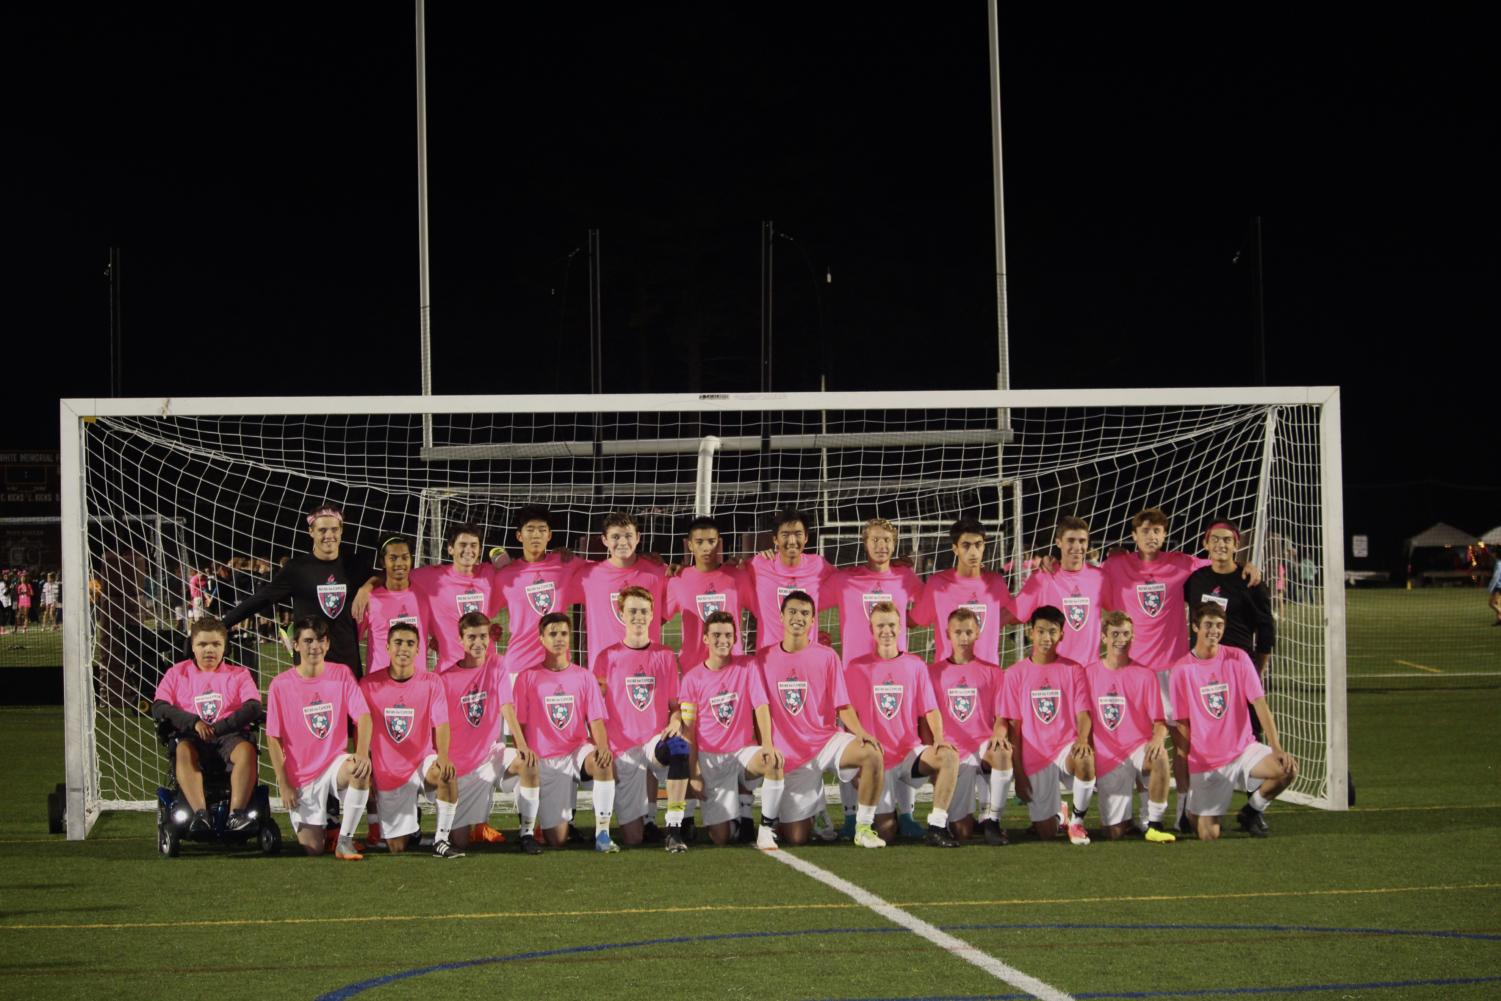 The+team+poses+for+a+picture+after+a+1-1+tie+against+Acton-Boxborough.